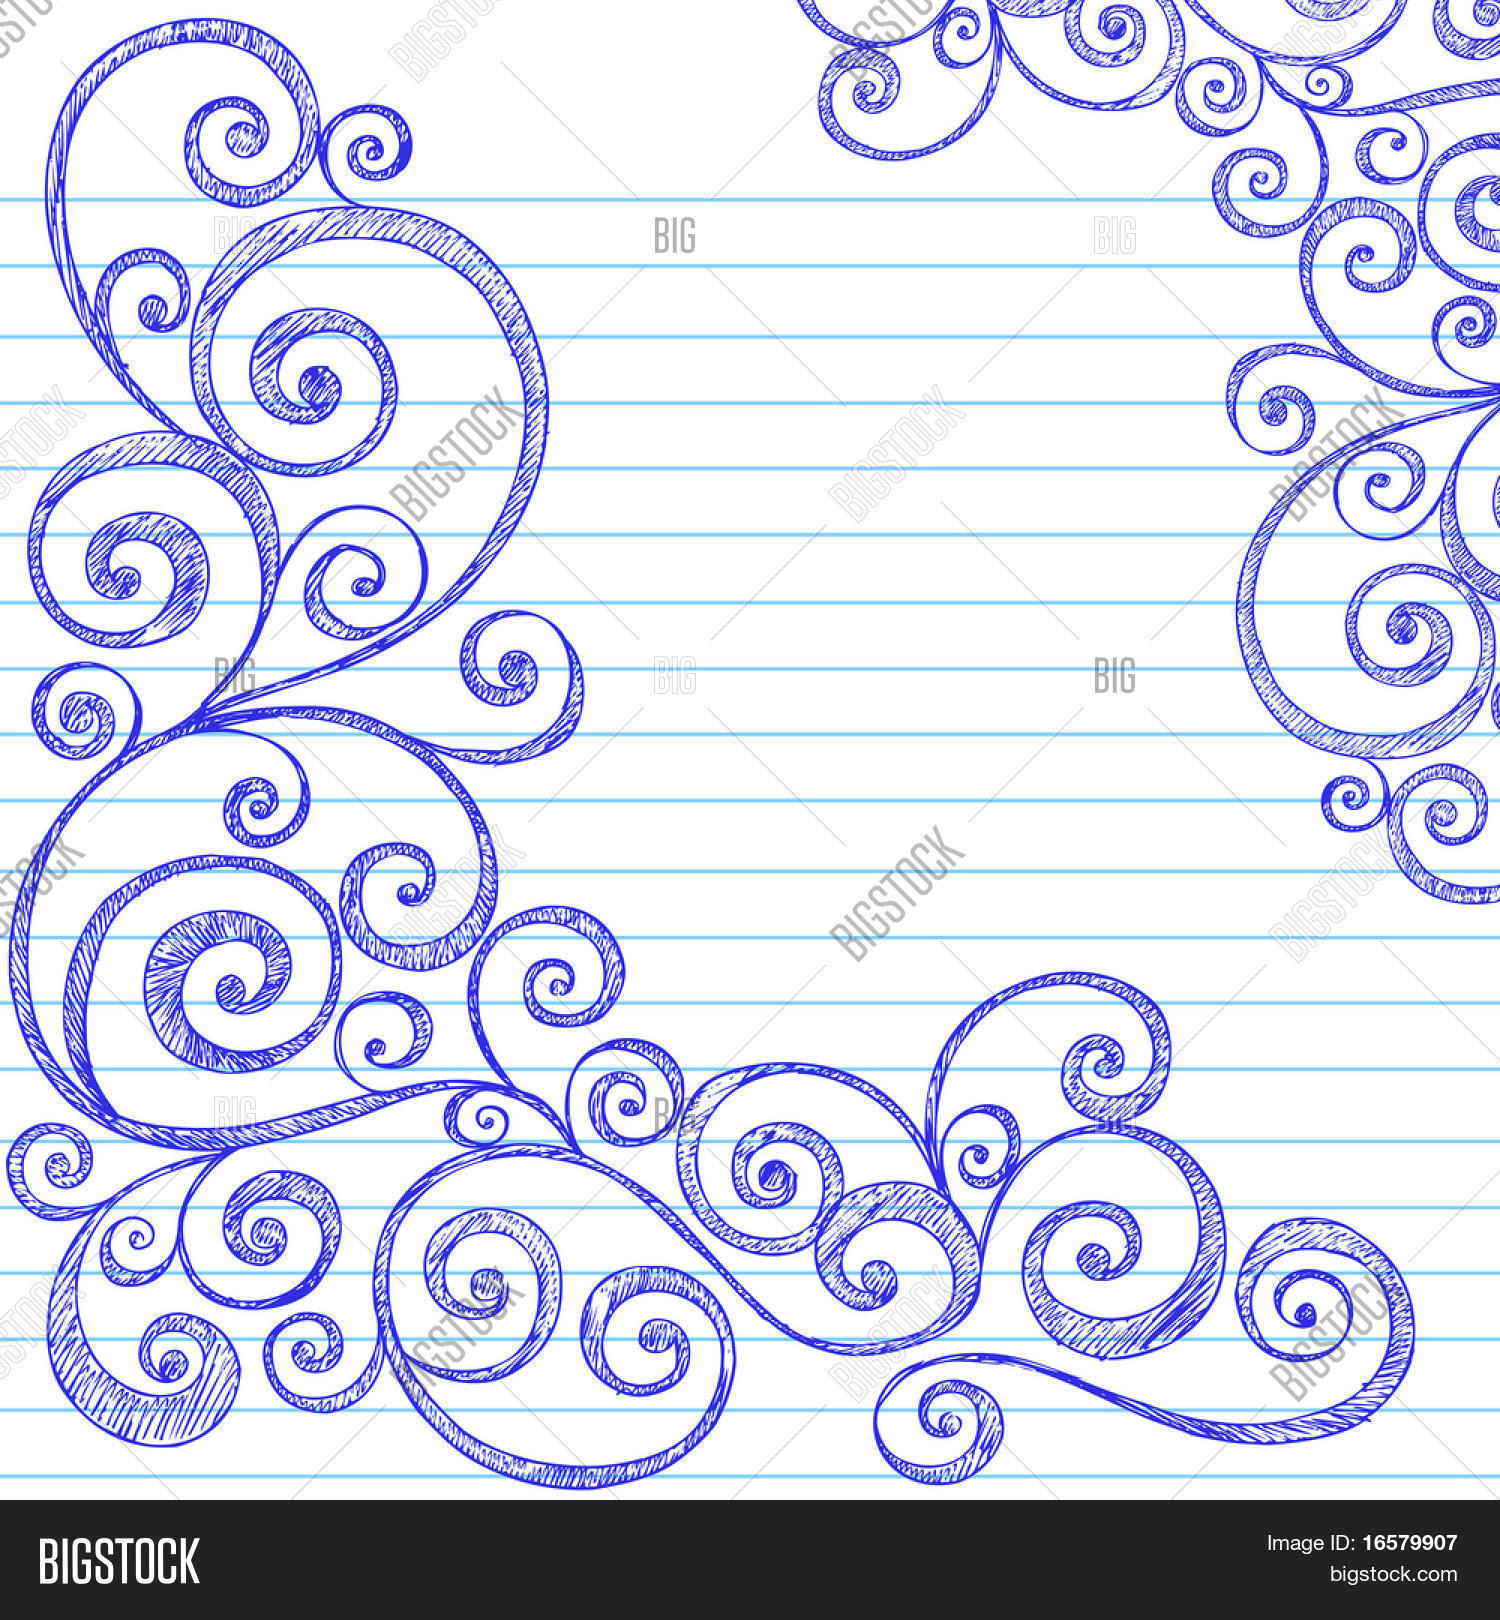 HandDrawn Sketchy Doodles Swirly Border on Lined Notebook Paper – Lined Border Paper